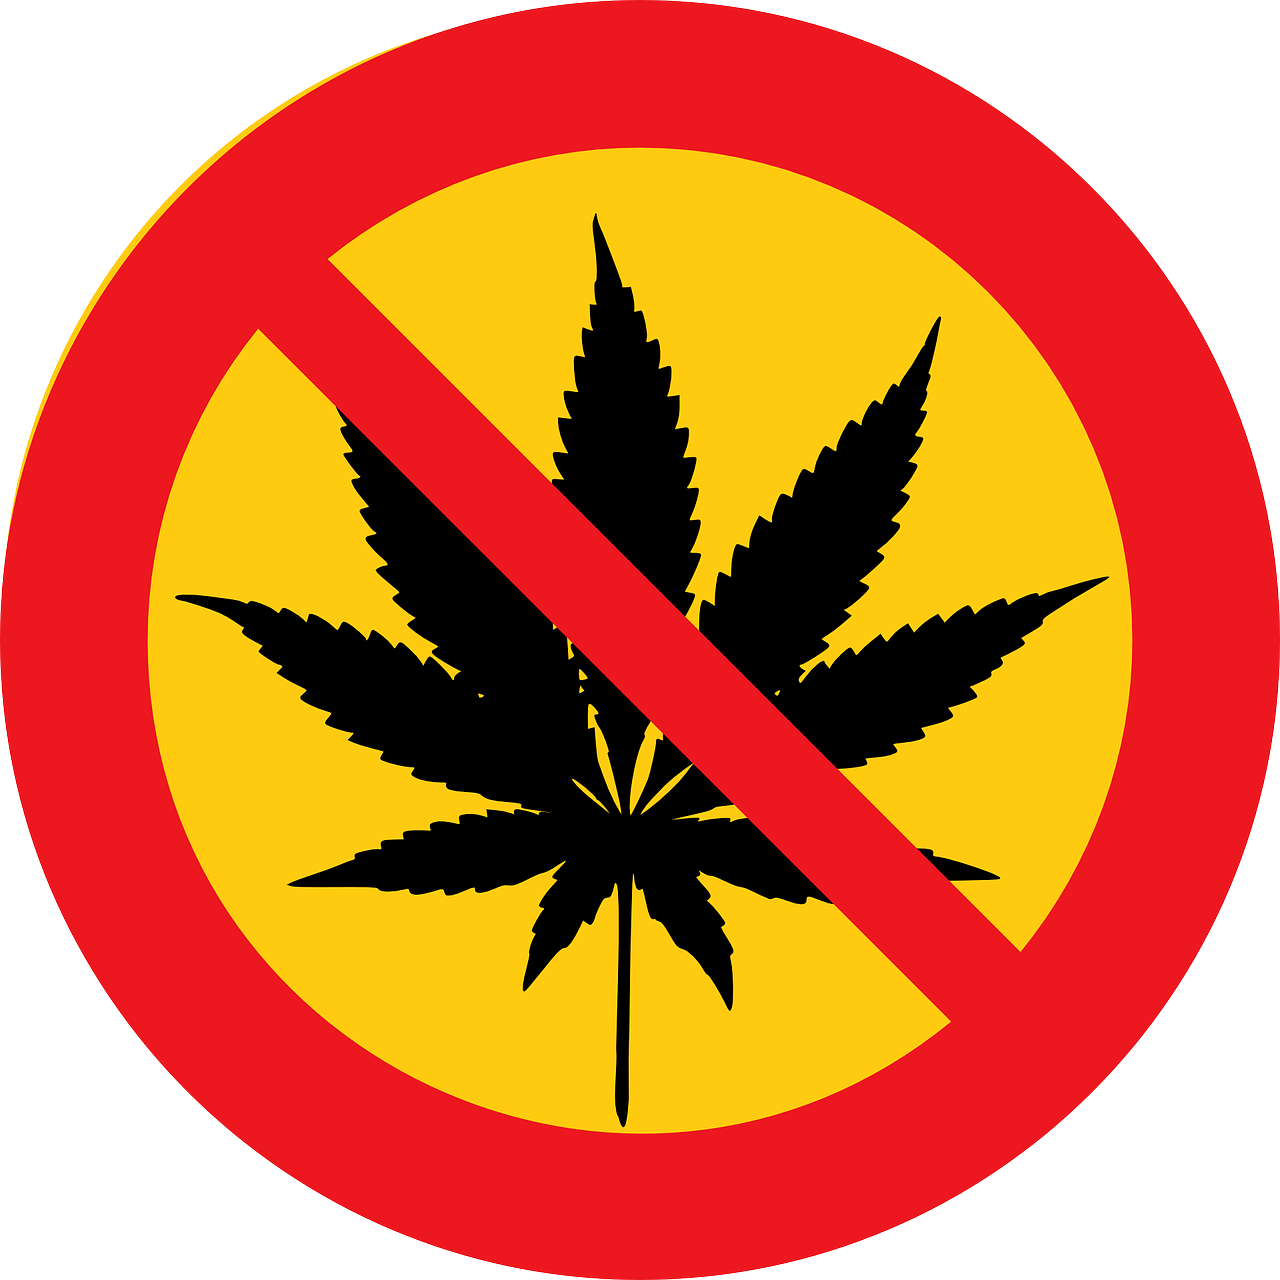 reasons to oppose the legalization of recreational drugs sixteen reasons to oppose the legalization of recreational drugs cannabis 151920 1280